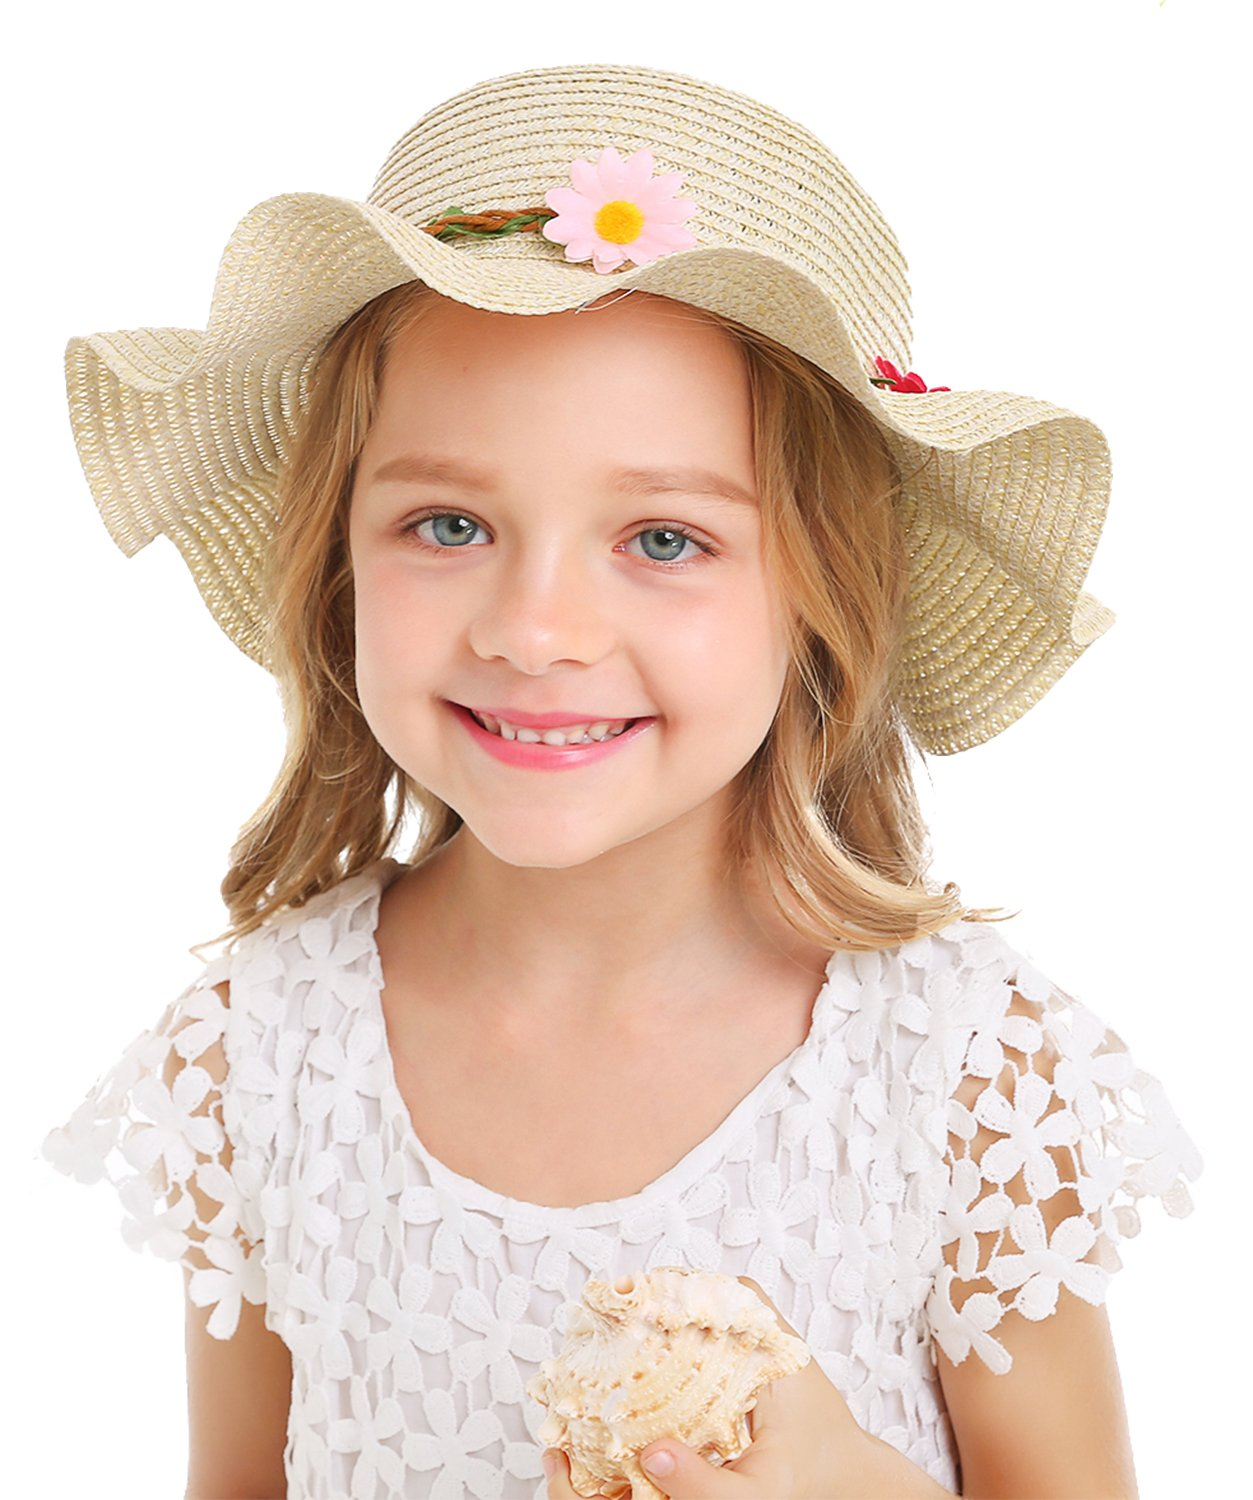 Bienvenu Sun Straw Hat Kids Girls Large Wide Brim Travel Beach Beanie Cap,Beige by Bienvenu (Image #4)